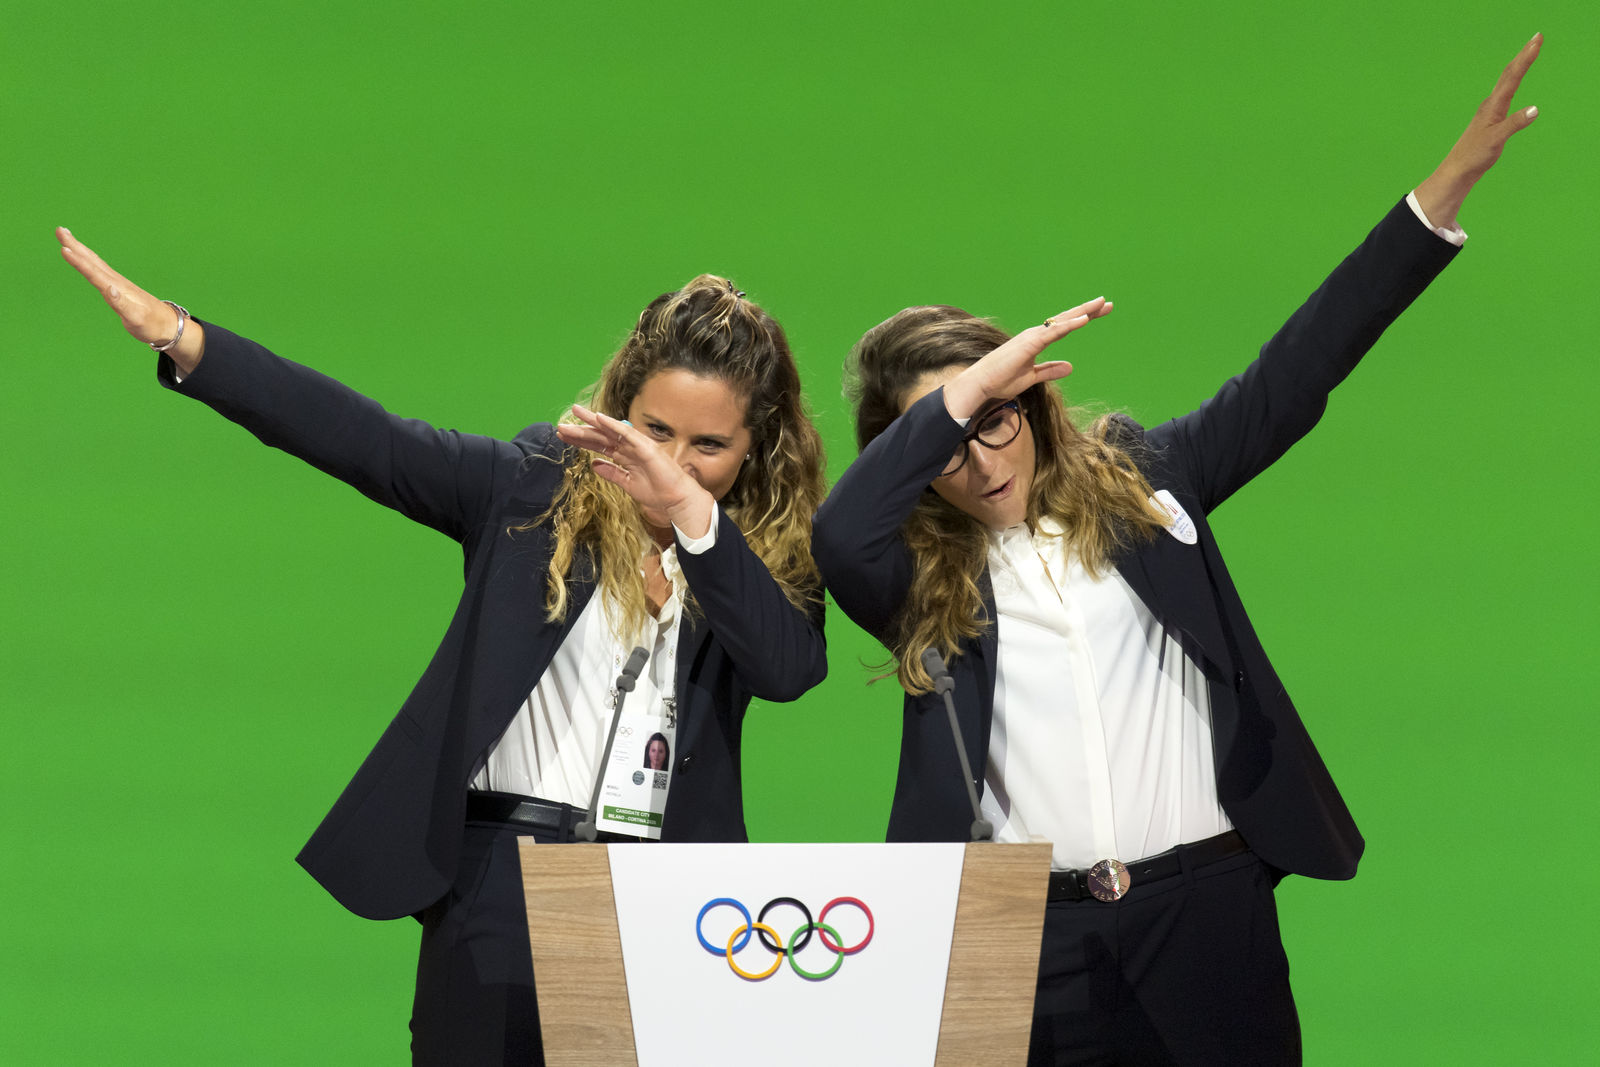 Italian snowboarder Michela Moioli, left, and Italian skier Sofia Goggia, right, dab after speaking during the presentation final presentation of the Milan-Cortina candidate cities the first day of the 134th Session of the International Olympic Committee (IOC), at the SwissTech Convention Centre, in Lausanne, Switzerland, Monday, June 24, 2019. (Laurent Gillieron/Keystone via AP)